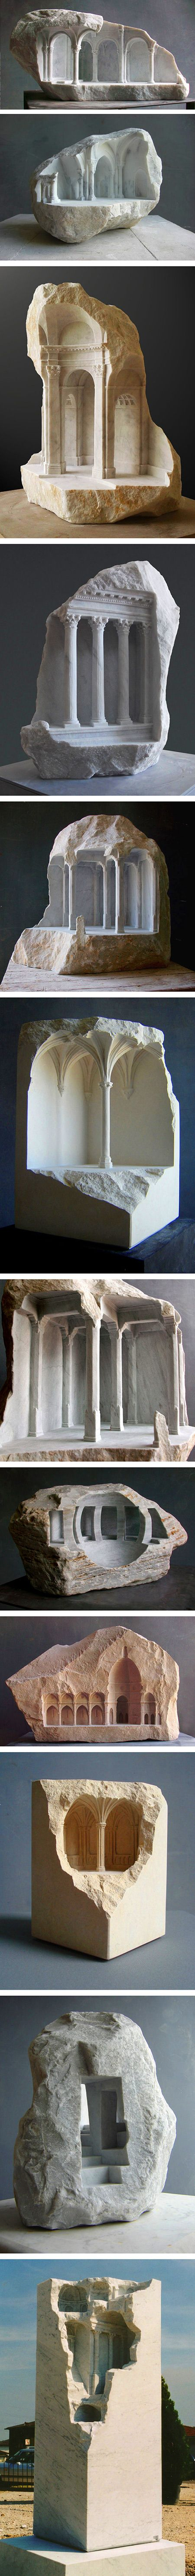 The marble sculptures by British artist Matthew Simmonds aren't your typical human forms popularized by the Ancient Greeks and Romans. Instead, he carves detailed and solitary architectural interiors into a corner or side of a hunk of stone. Simmonds leaves the natural edges of the rocks juxtaposed with his small, finished spaces. He pays homage to sacred buildings like baroque basilicas and Ancient Roman Temples by depicting some of their defining features like domed-roofs and elaborate ...